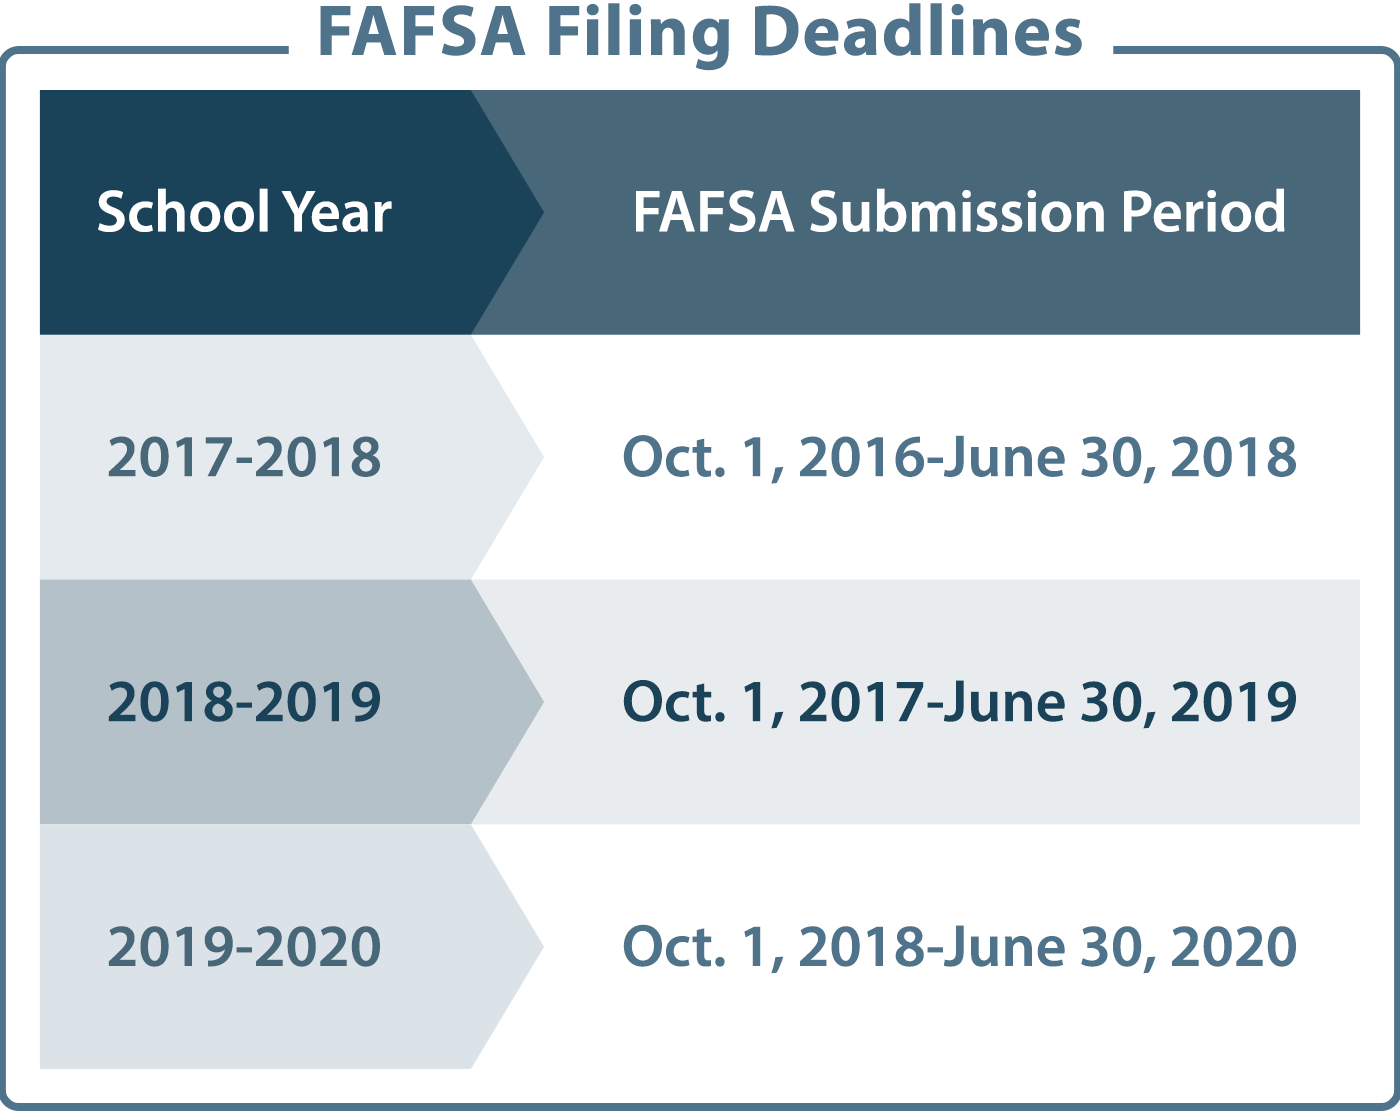 Fafsa Deadlines Spring 2020.How To Fill Out The Fafsa 7 Tips To Help You Apply